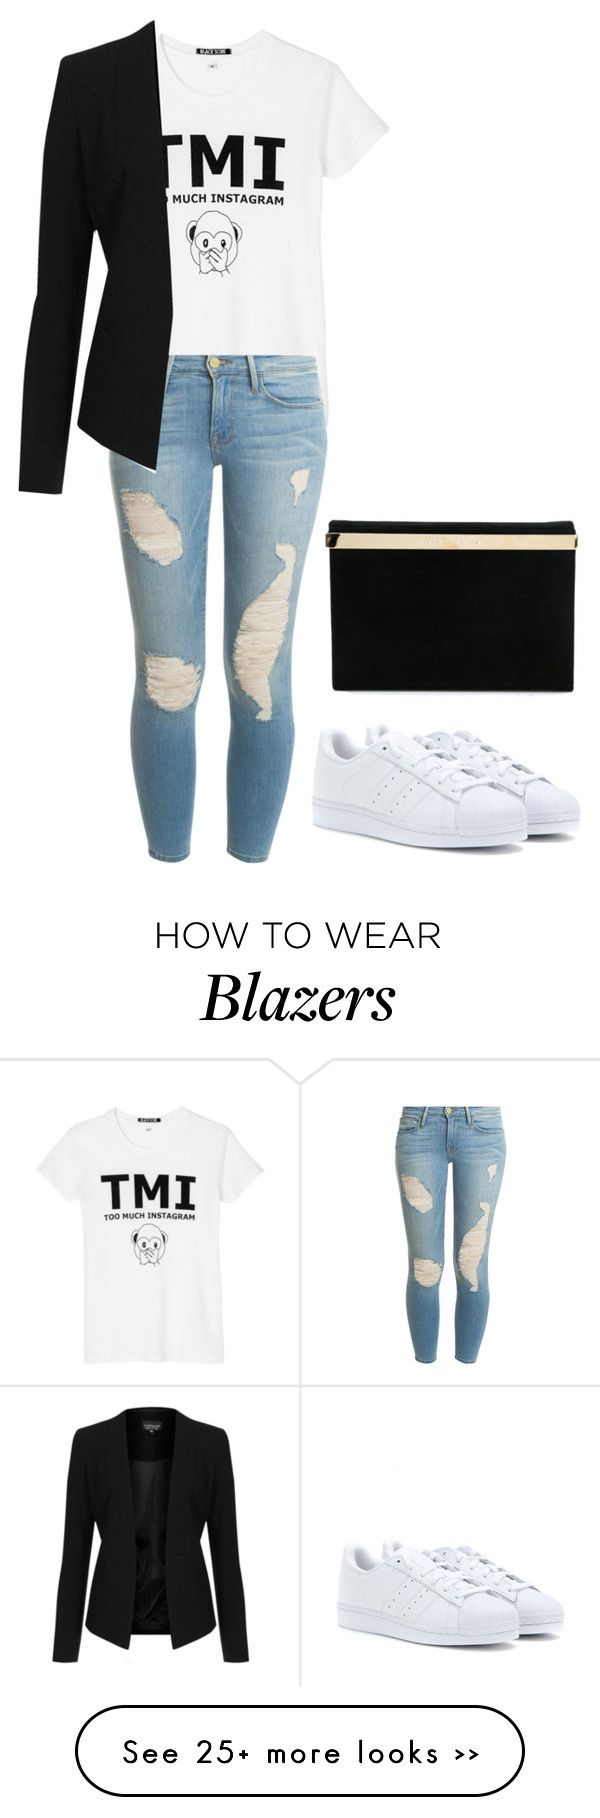 """""""Smart Casual"""" by acacia97 on Polyvore"""